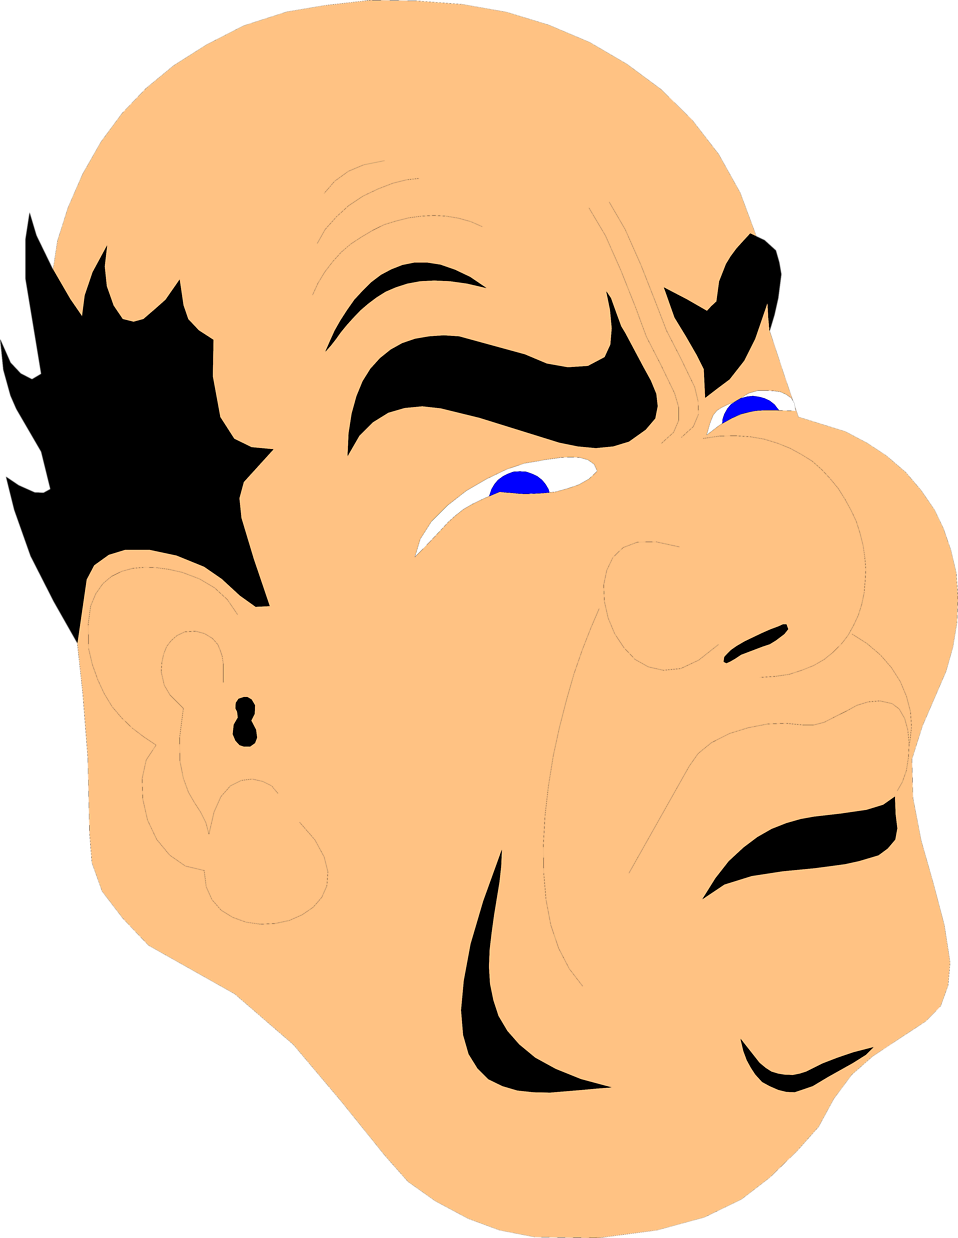 Mad clipart grouchy, Mad grouchy Transparent FREE for.